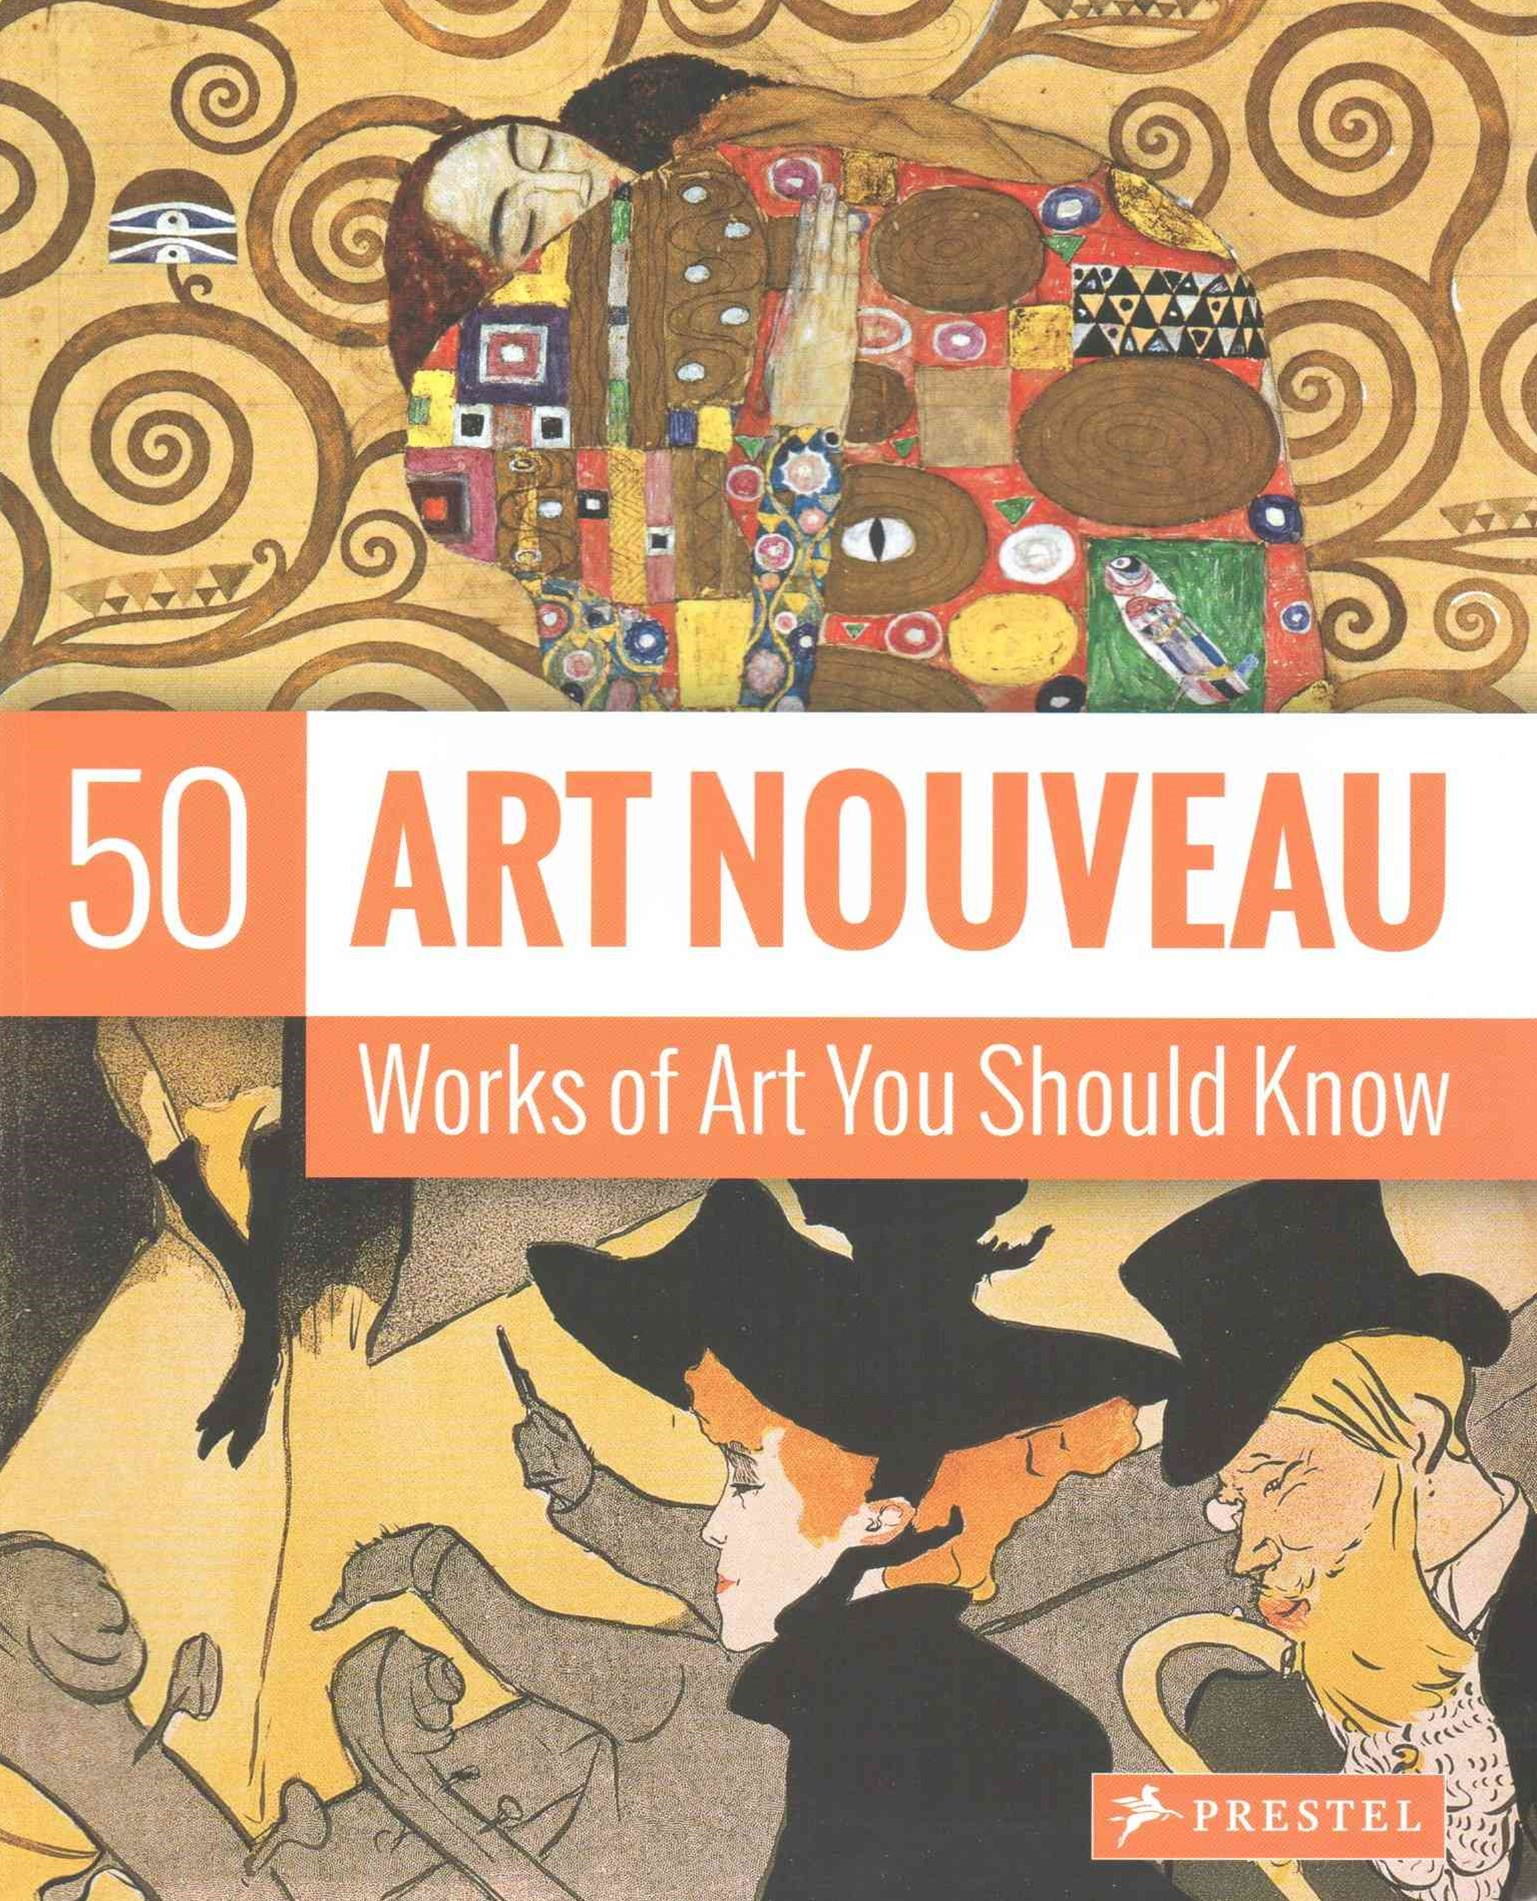 50 Art Nouveau Works of Art You Should Know